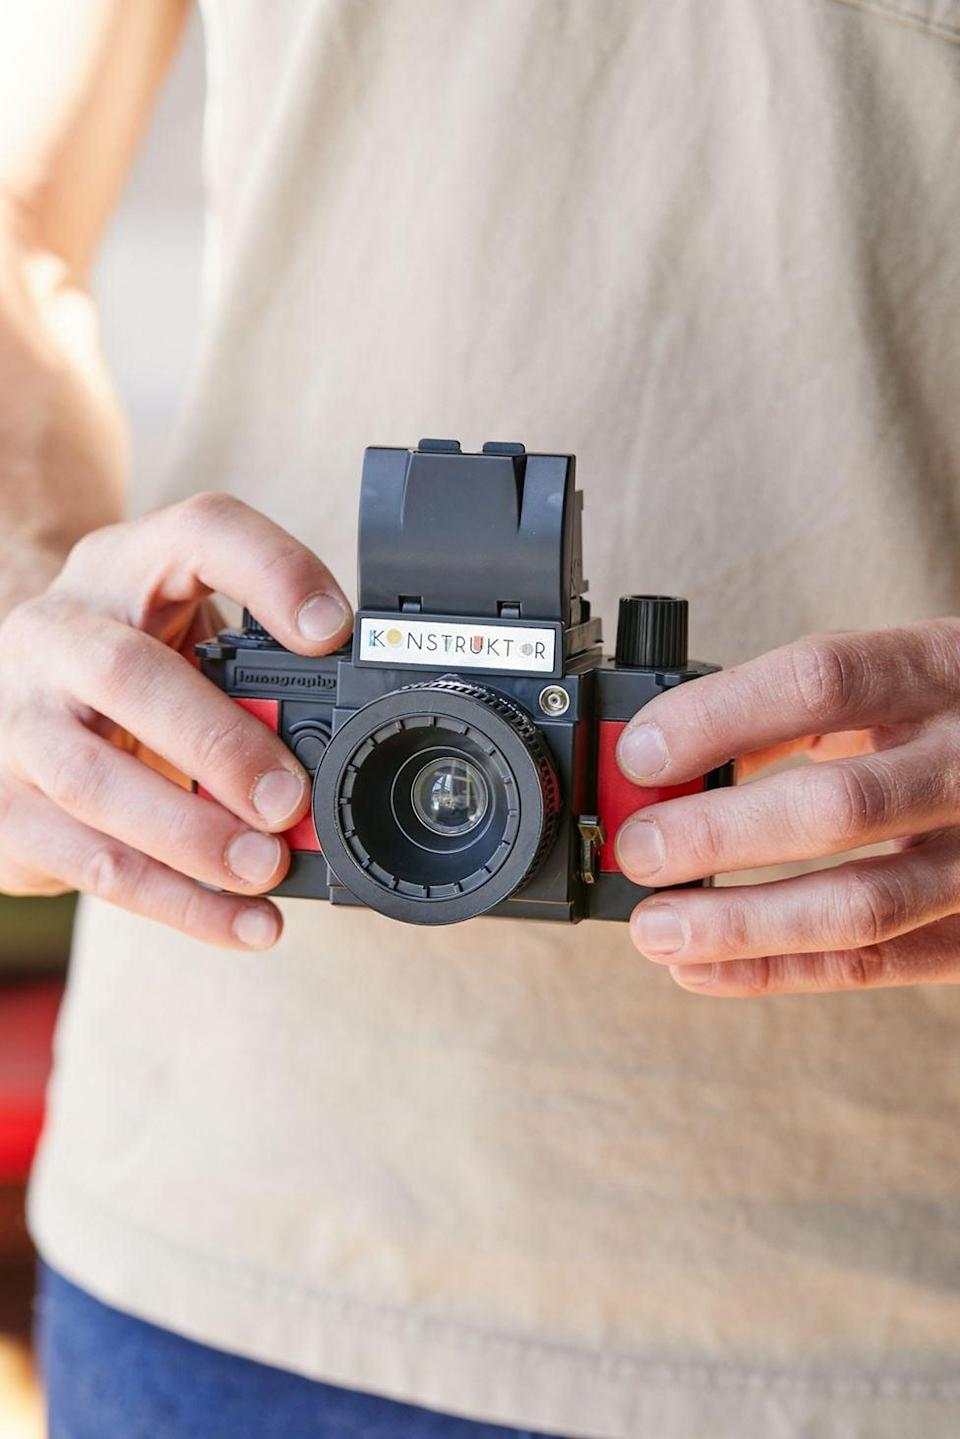 <p>If they love photography, get them a film camera that they can explore. The <span>Lomography Konstruktor F 35mm Camera</span> ($40) is both cool and affordable.</p>